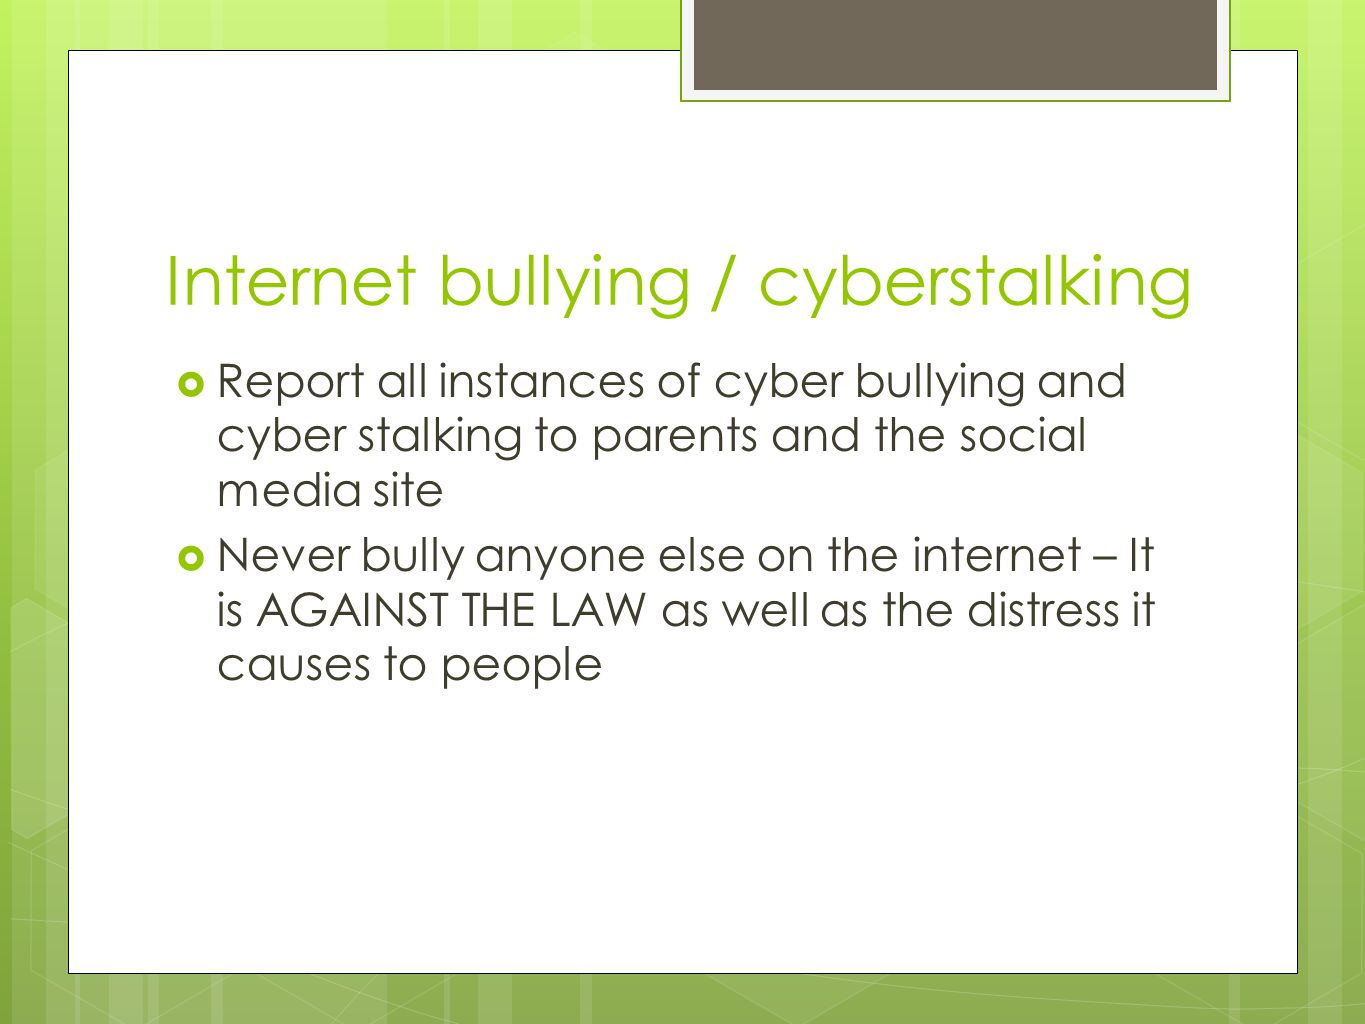 Internet bullying / cyberstalking